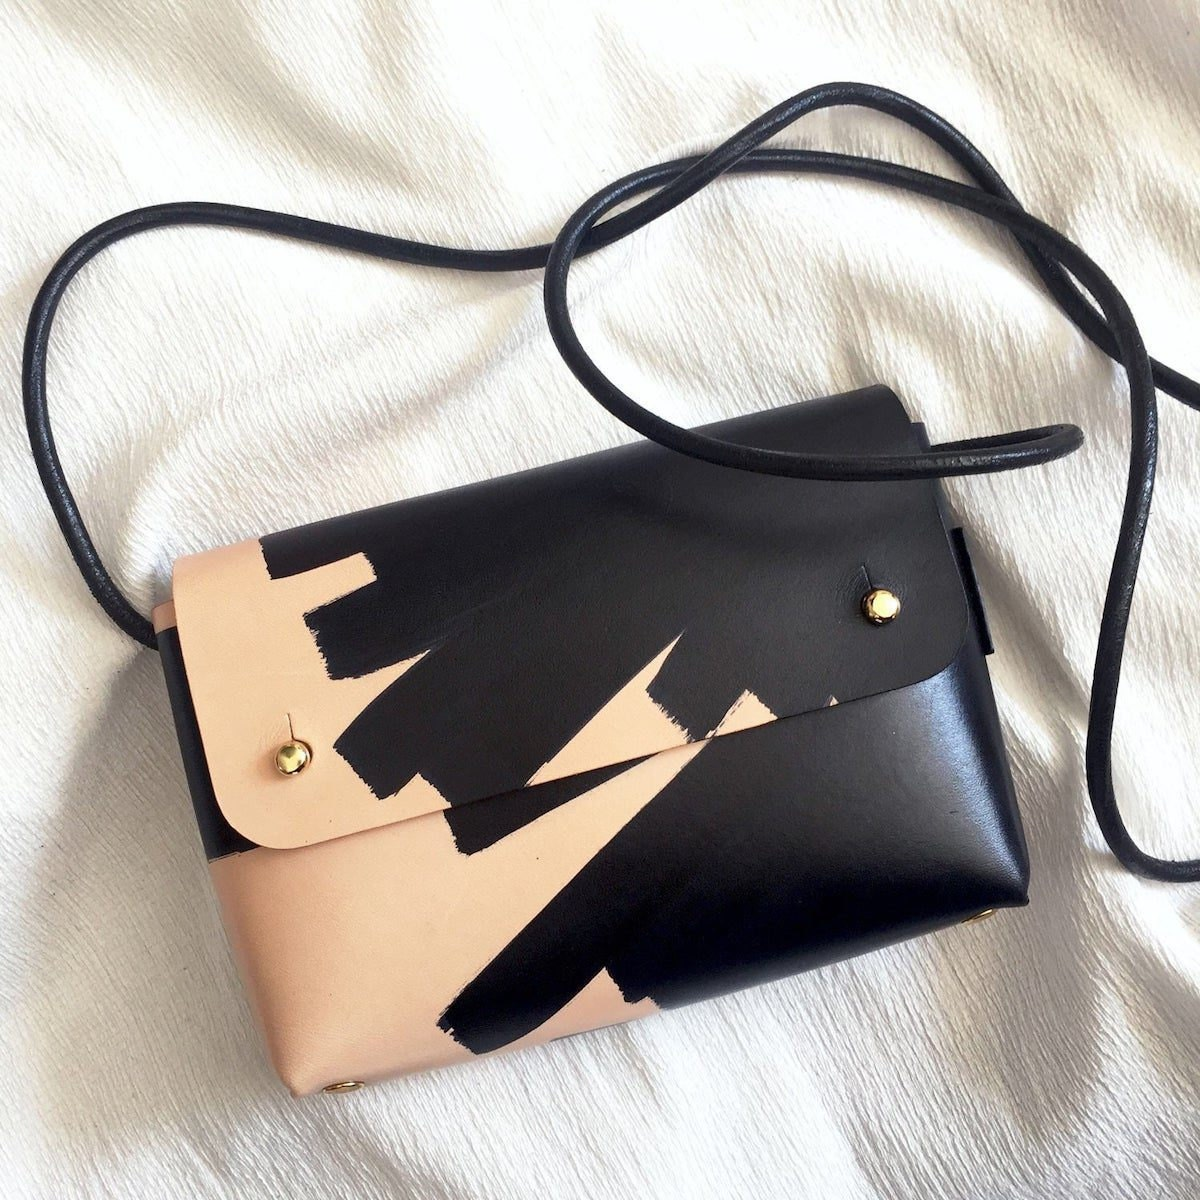 Hand-painted leather handbag from Klès